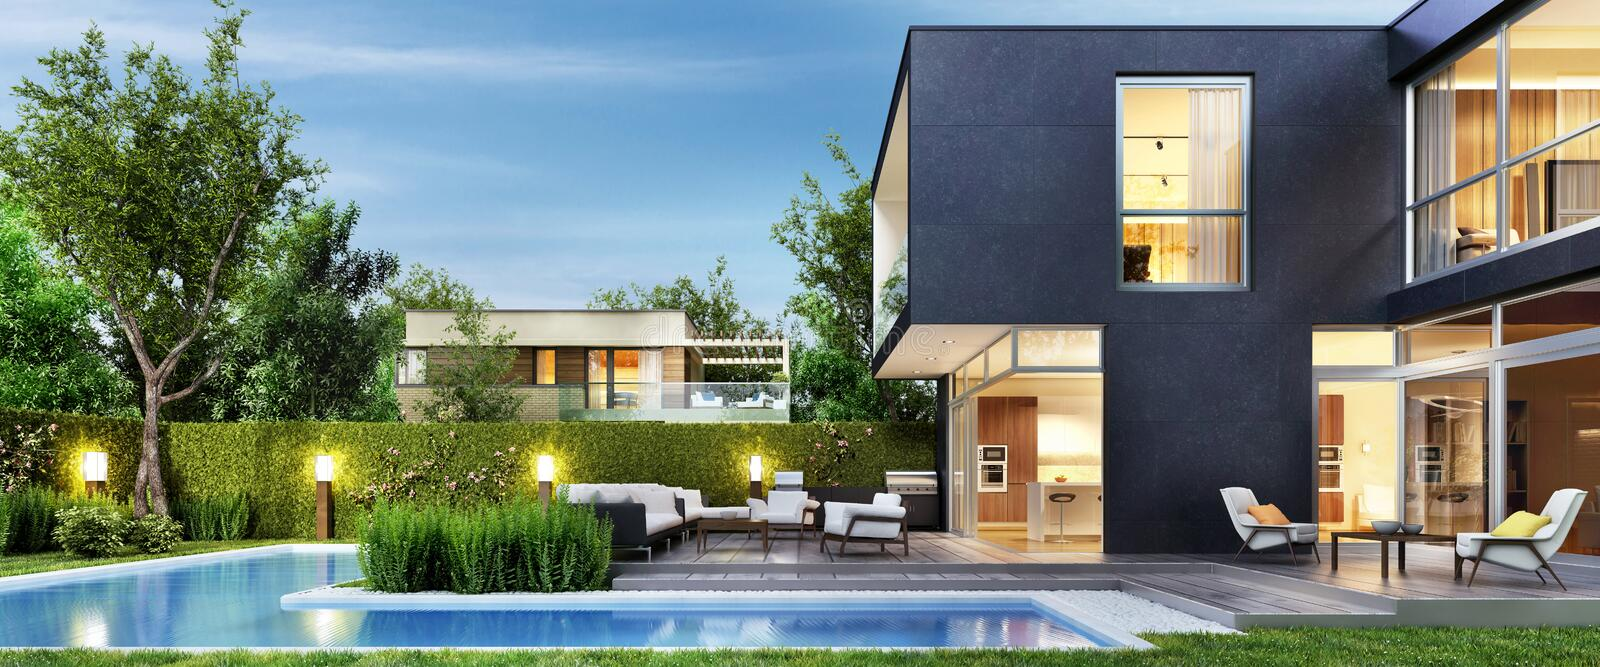 Modern black house with patio and pool. Evening view. Interior and exterior stock illustration